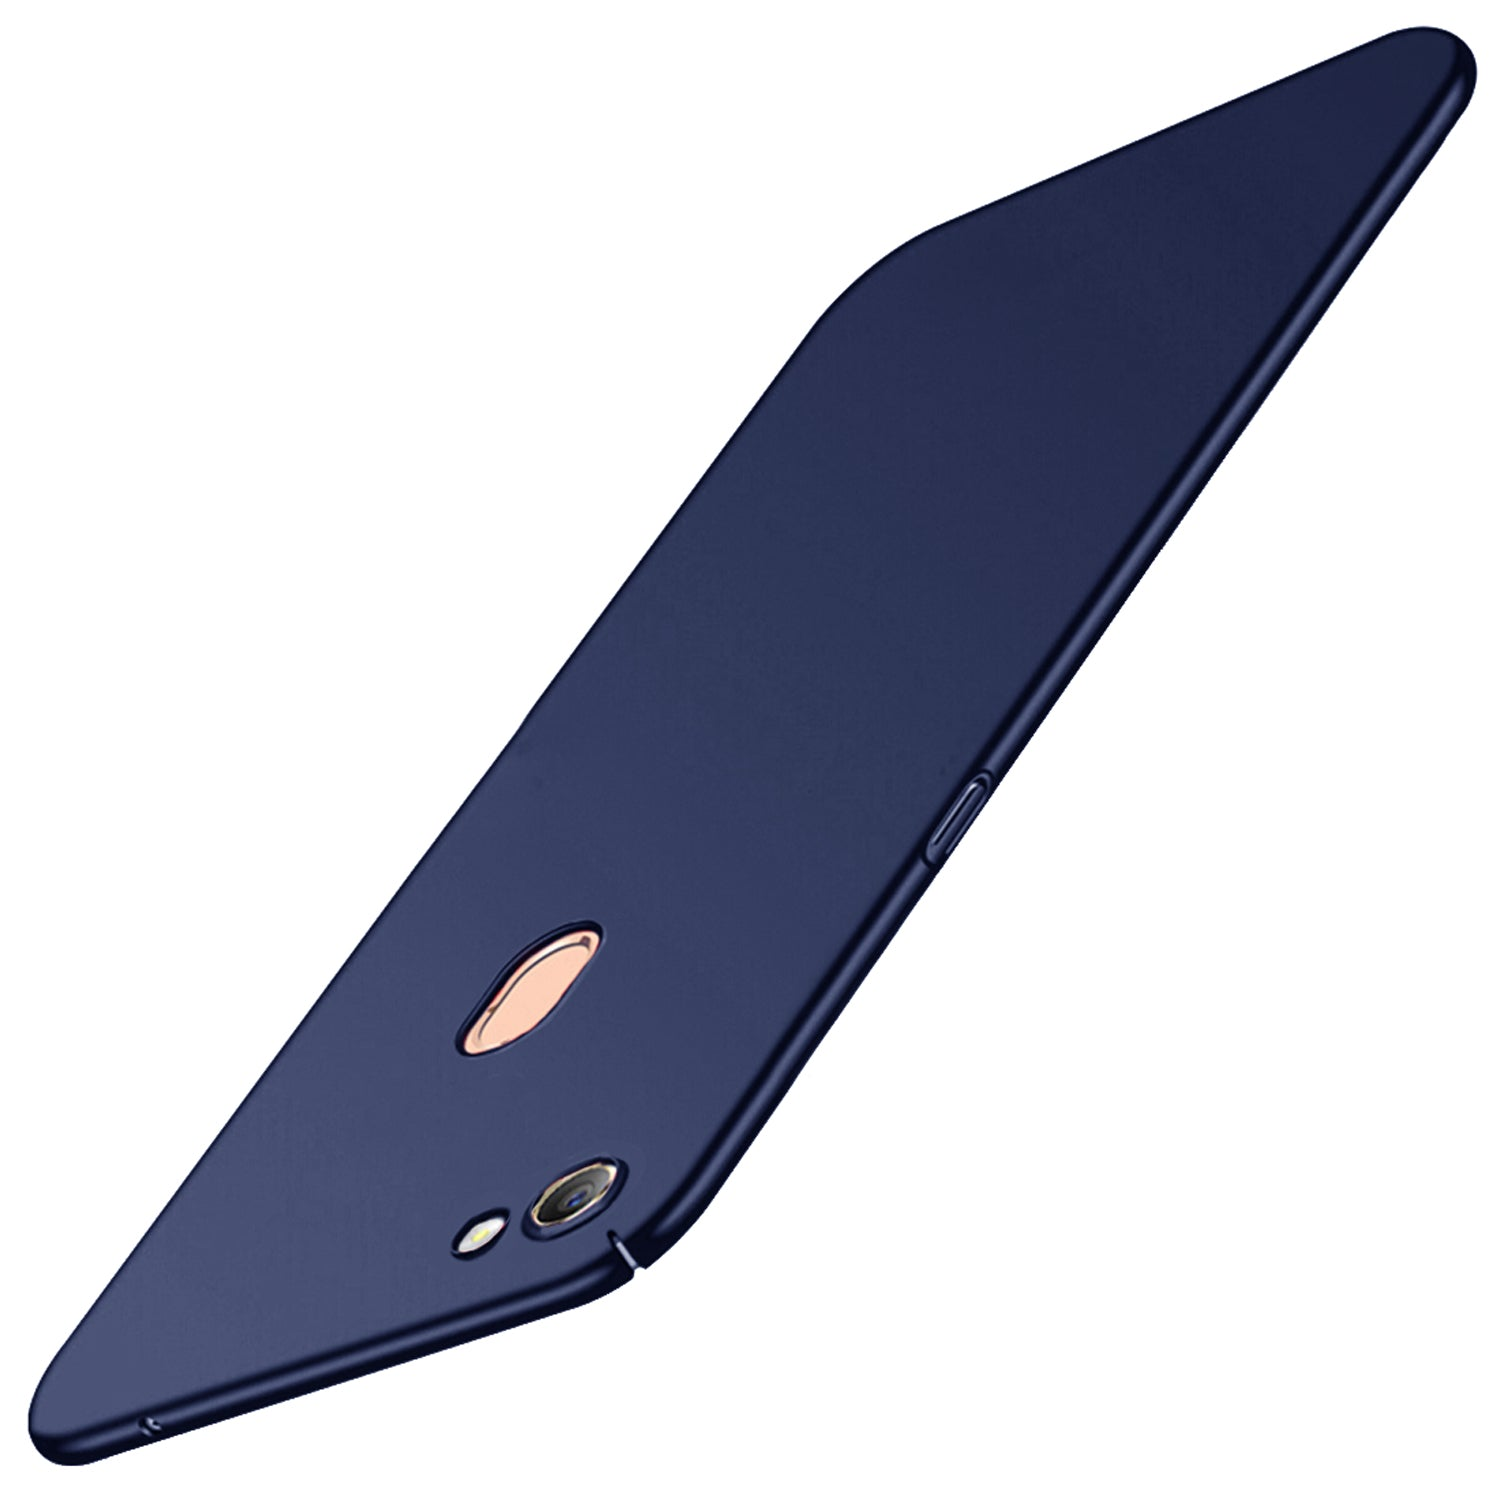 Silk Smooth Finish [Full Coverage] All Sides Protection Slim Back Case Cover For Oppo F5 - Blue - Mobizang